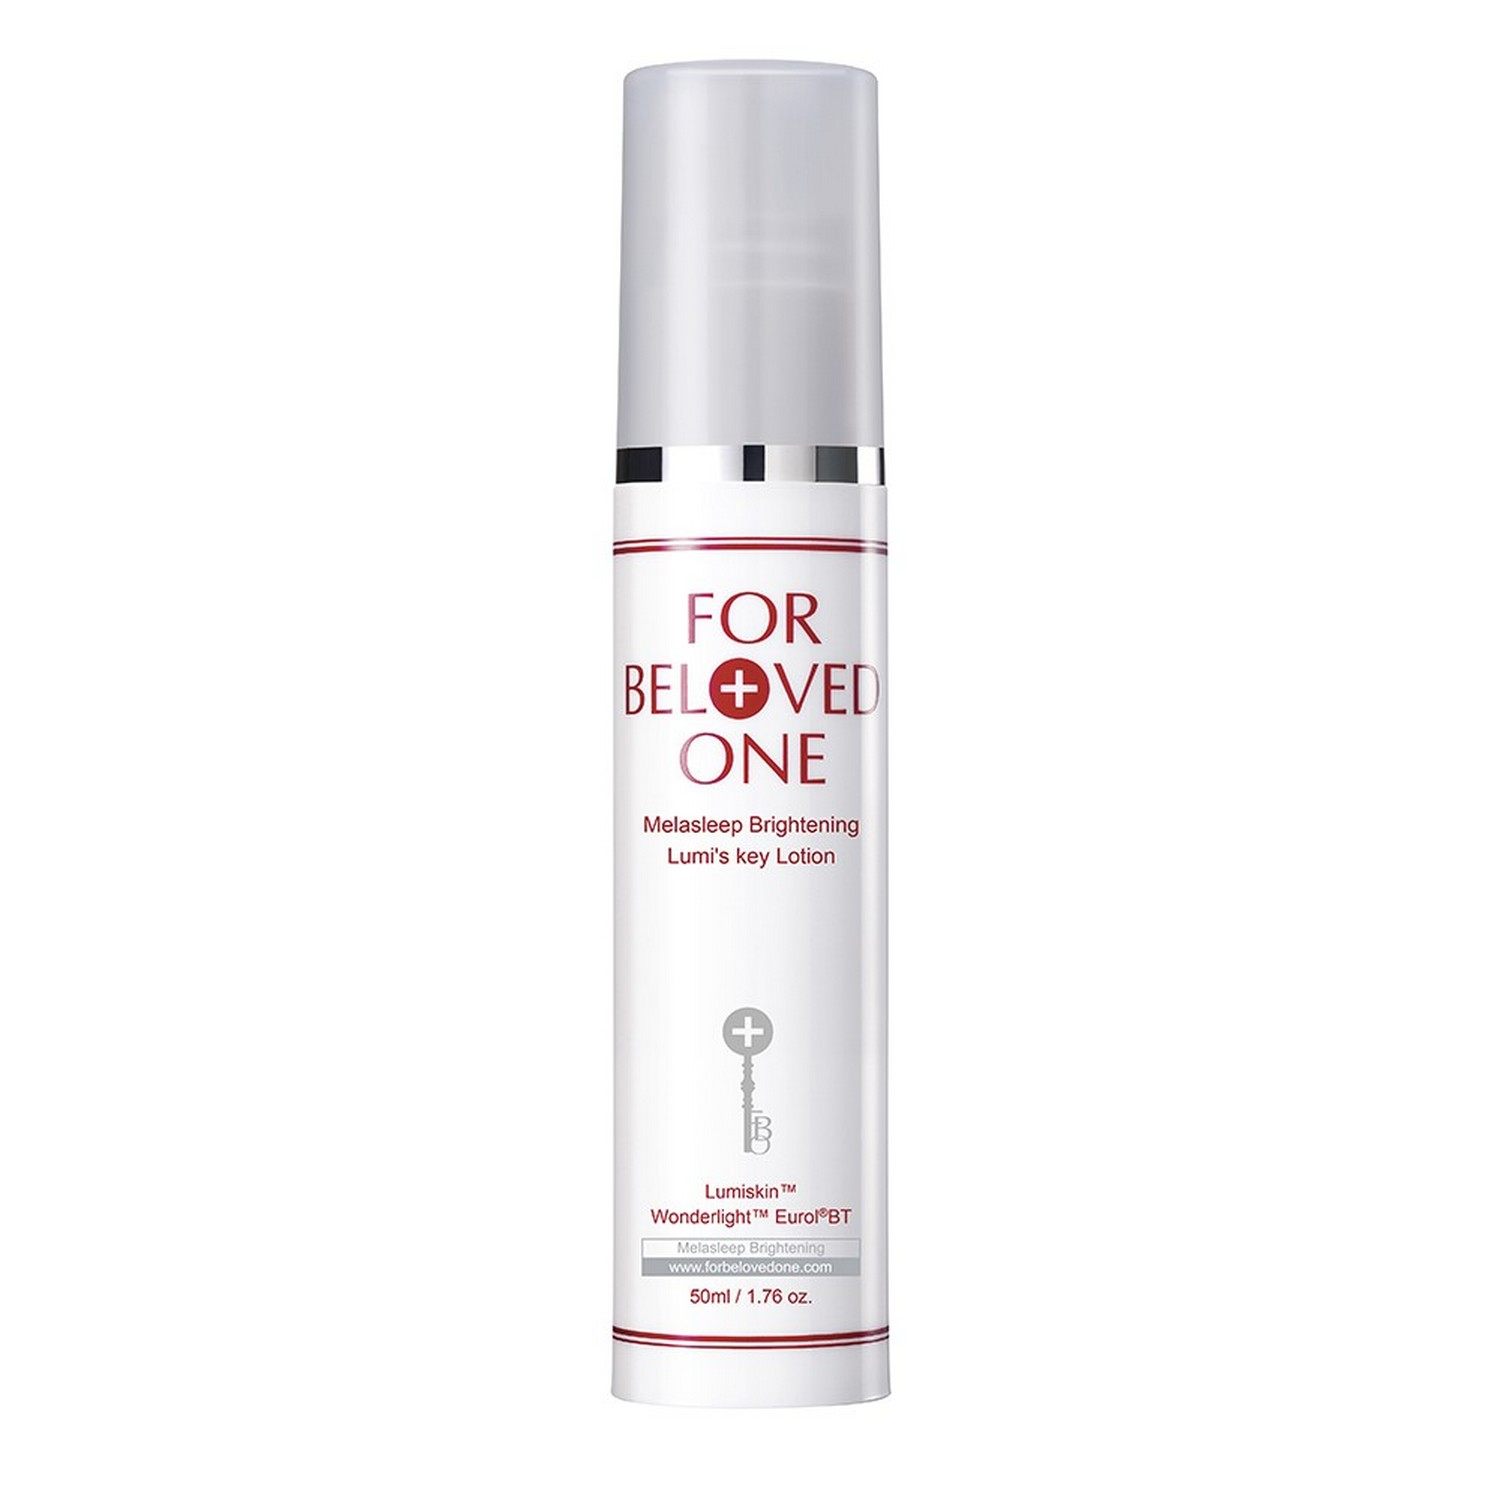 For Beloved One Melasleep Brightening Lumi's Key Lotion (50 ml / 1.76 oz)